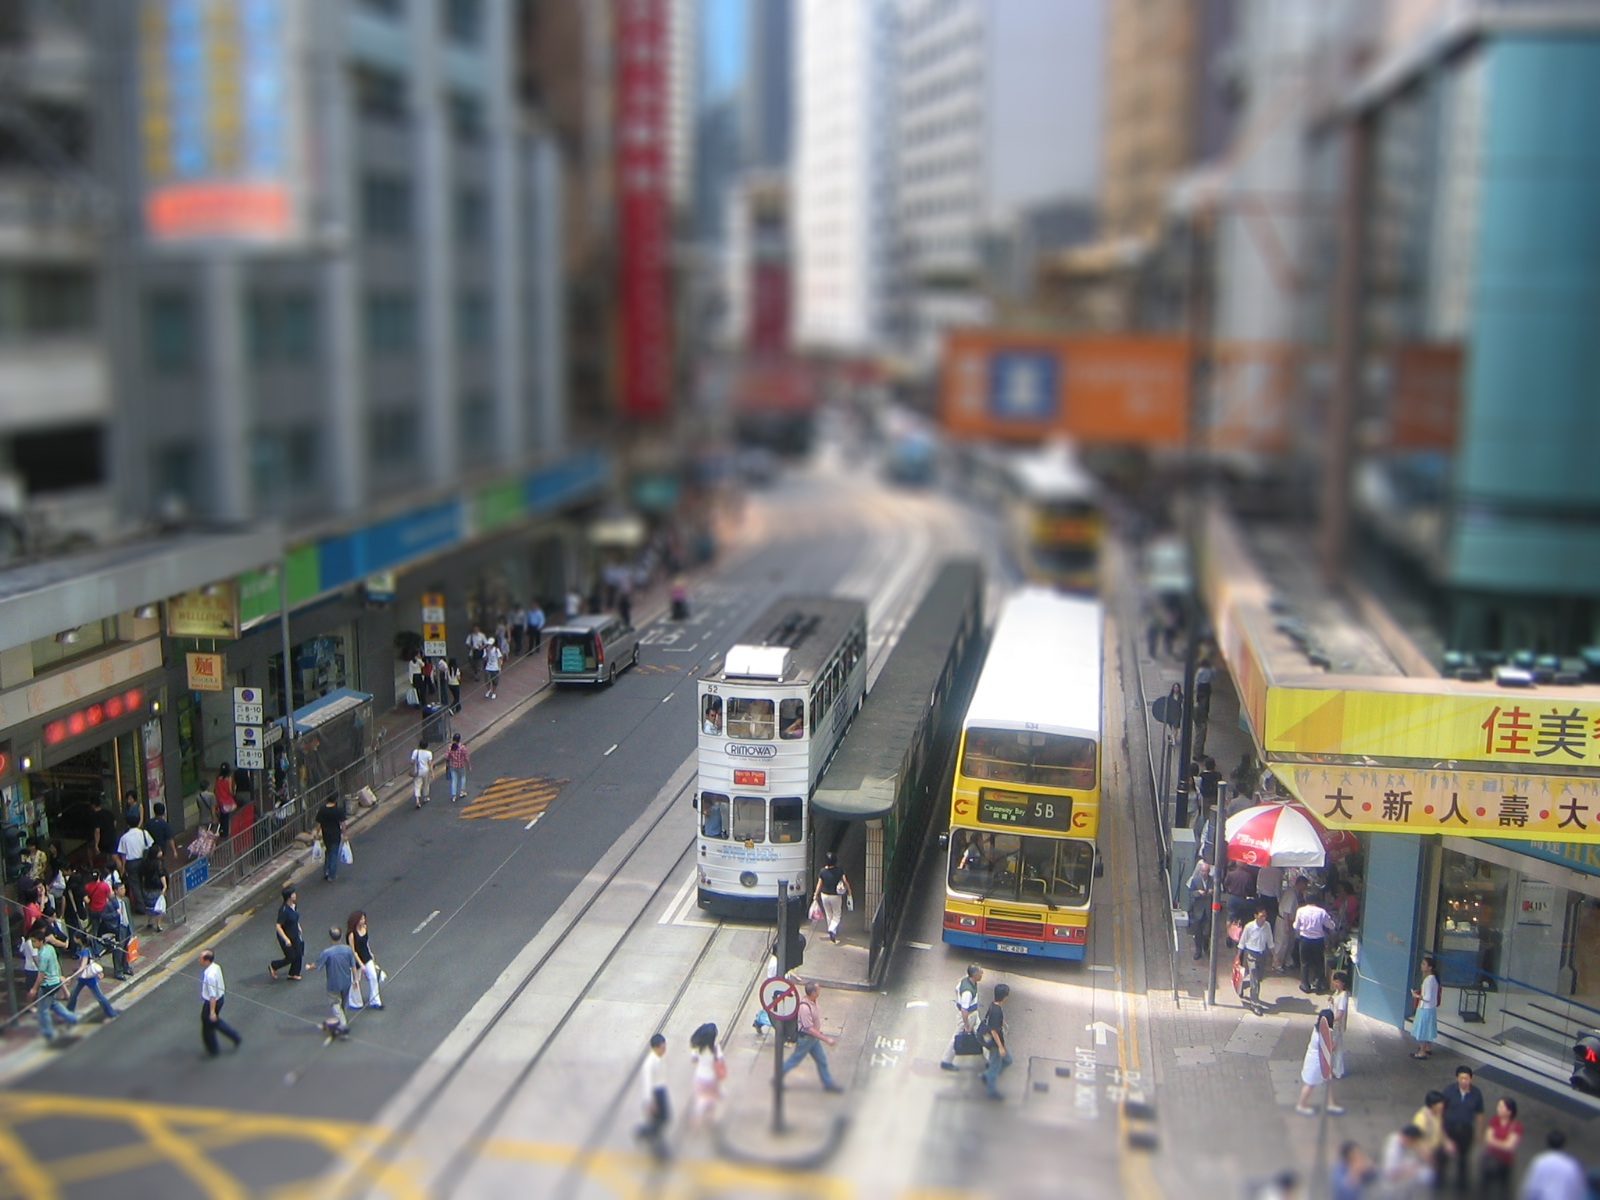 DeVoeux Rd Hong Kong by TarJakArt